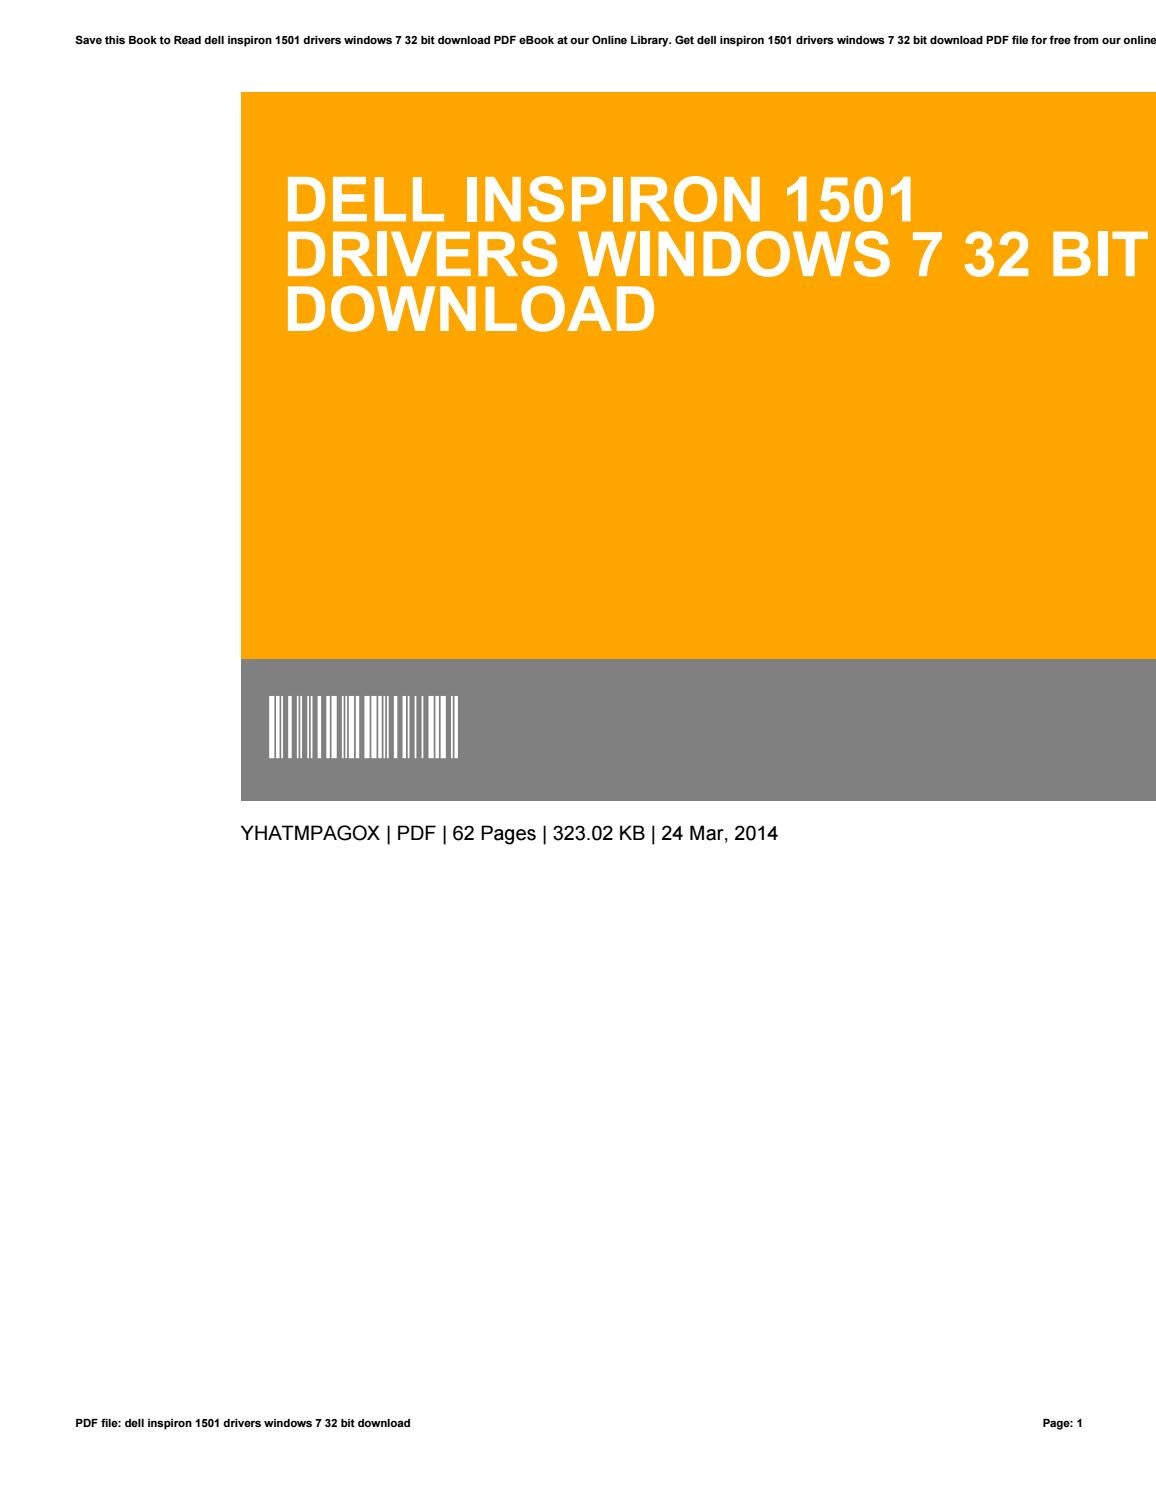 Dell inspiron 1501 drivers windows 7 32 bit download by